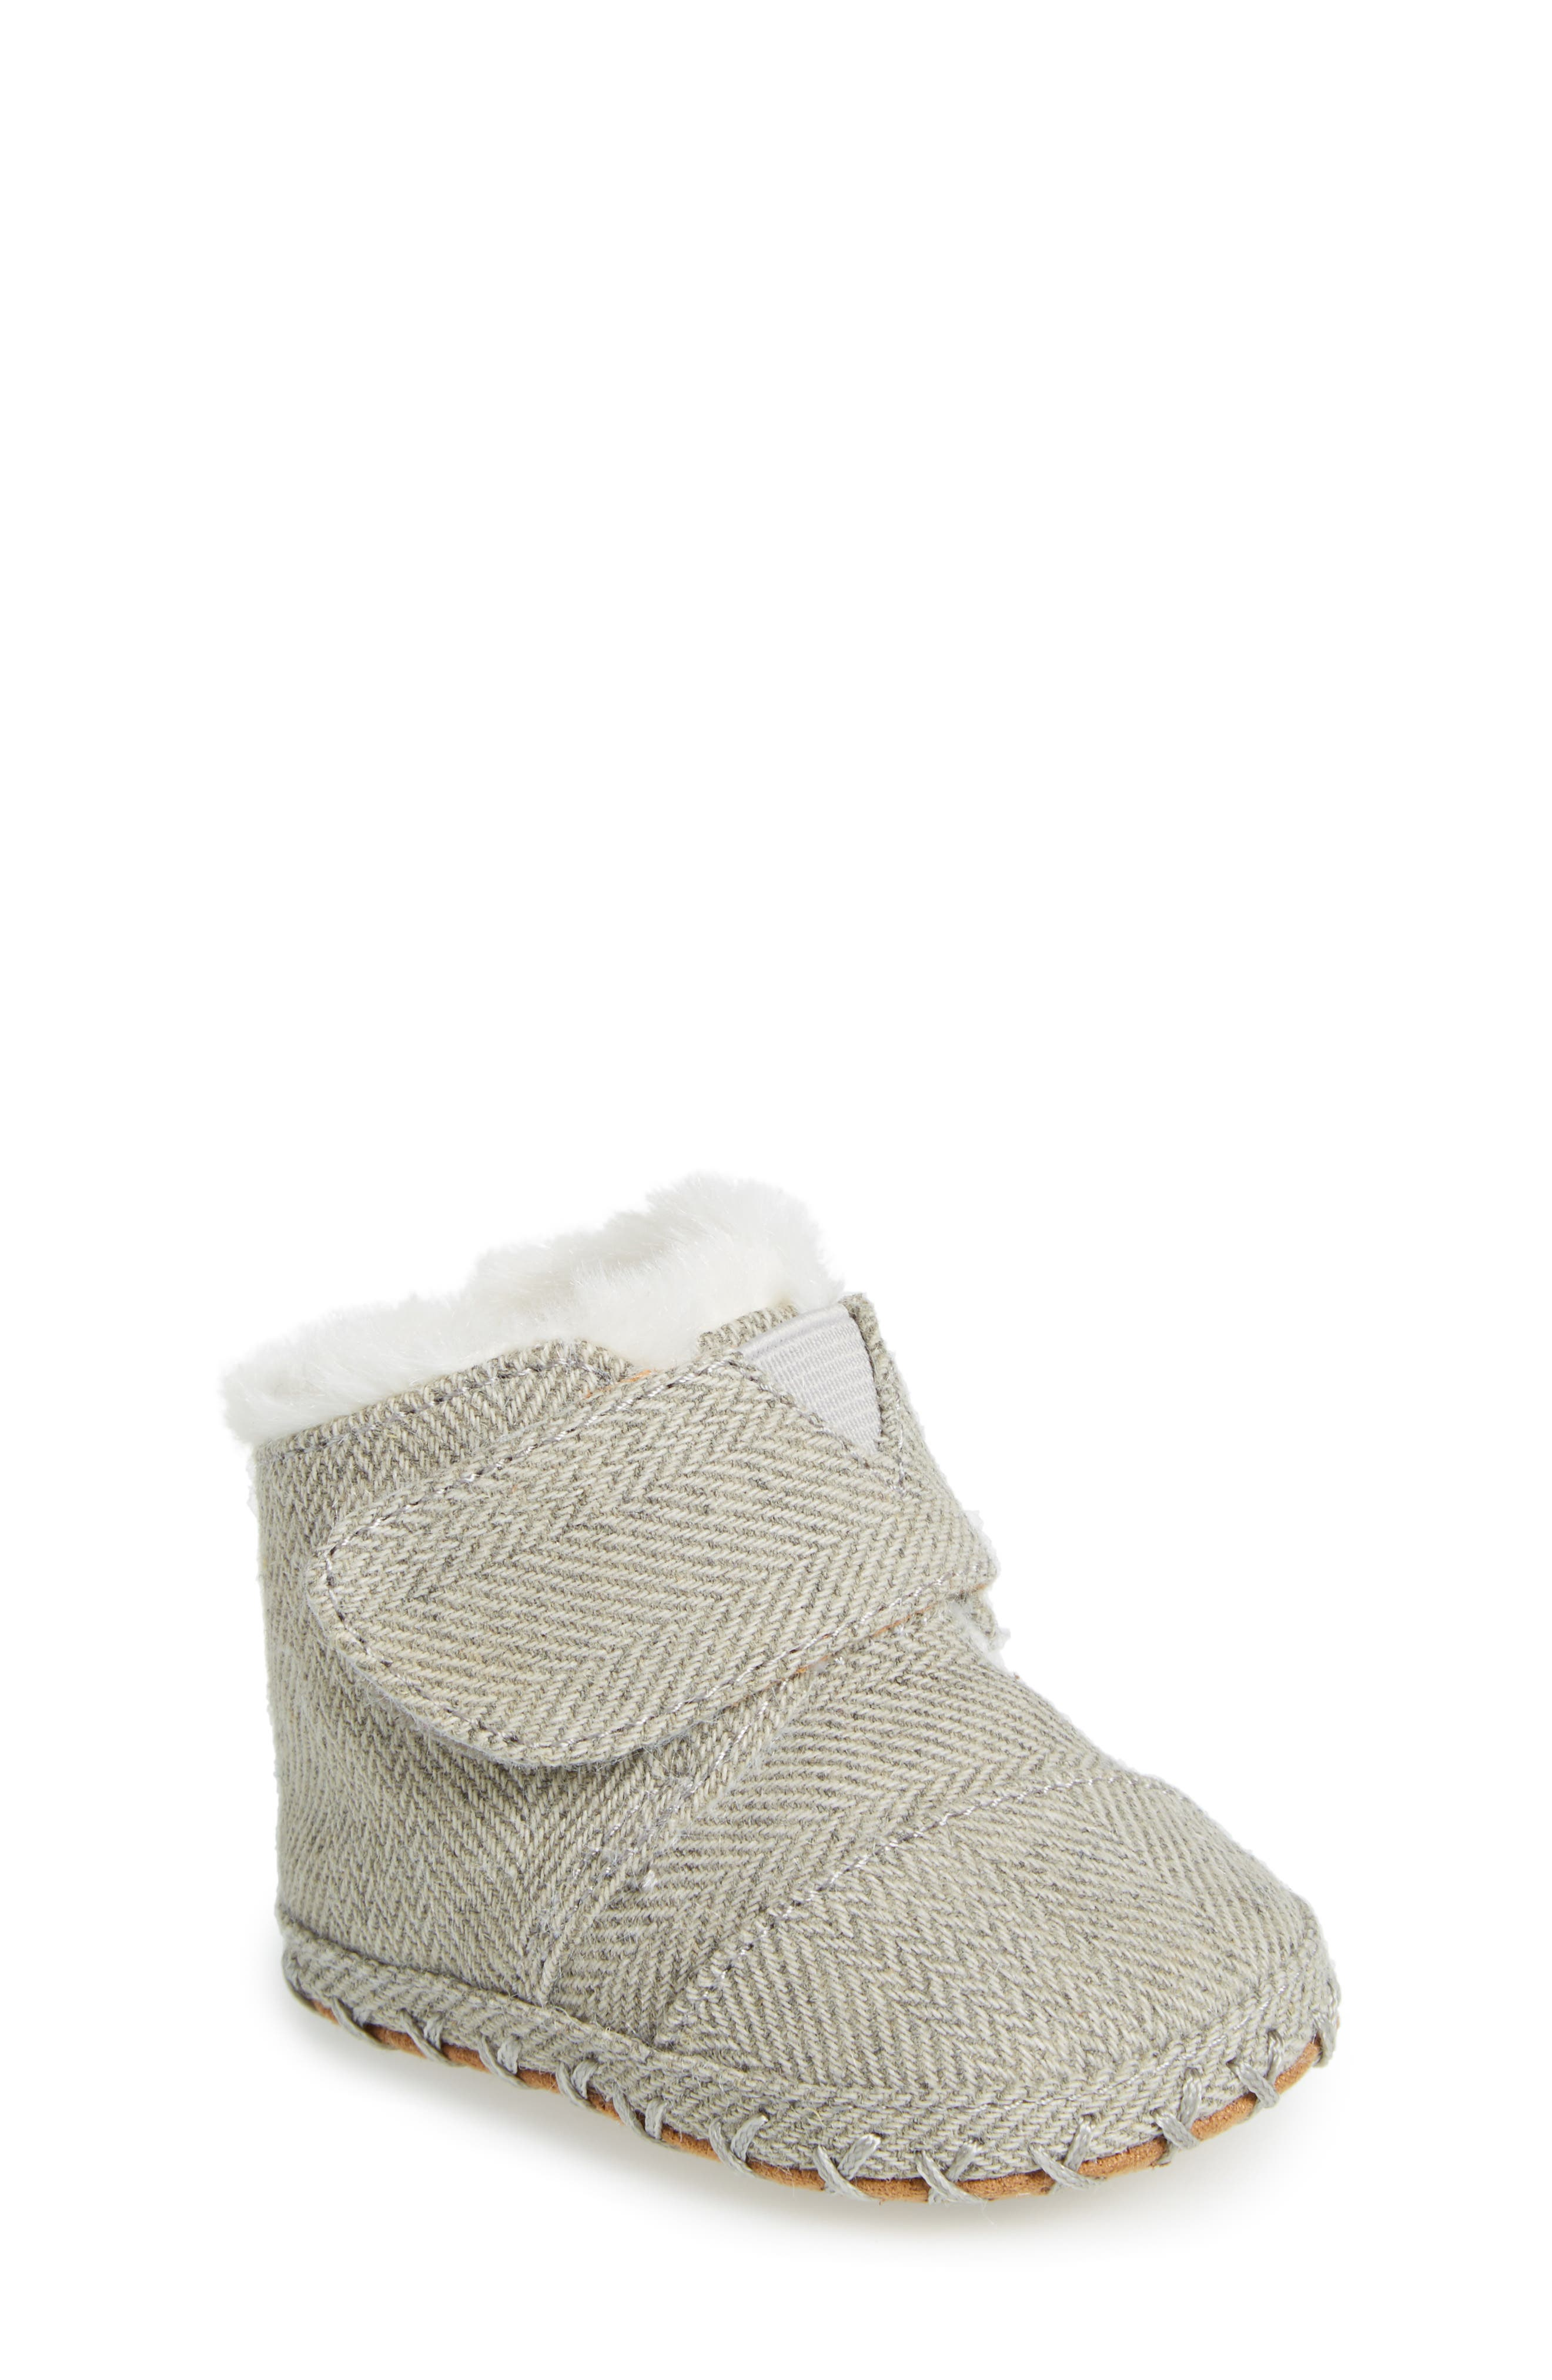 Main Image - TOMS Tiny Cuna Faux Fur Crib Bootie (Baby)